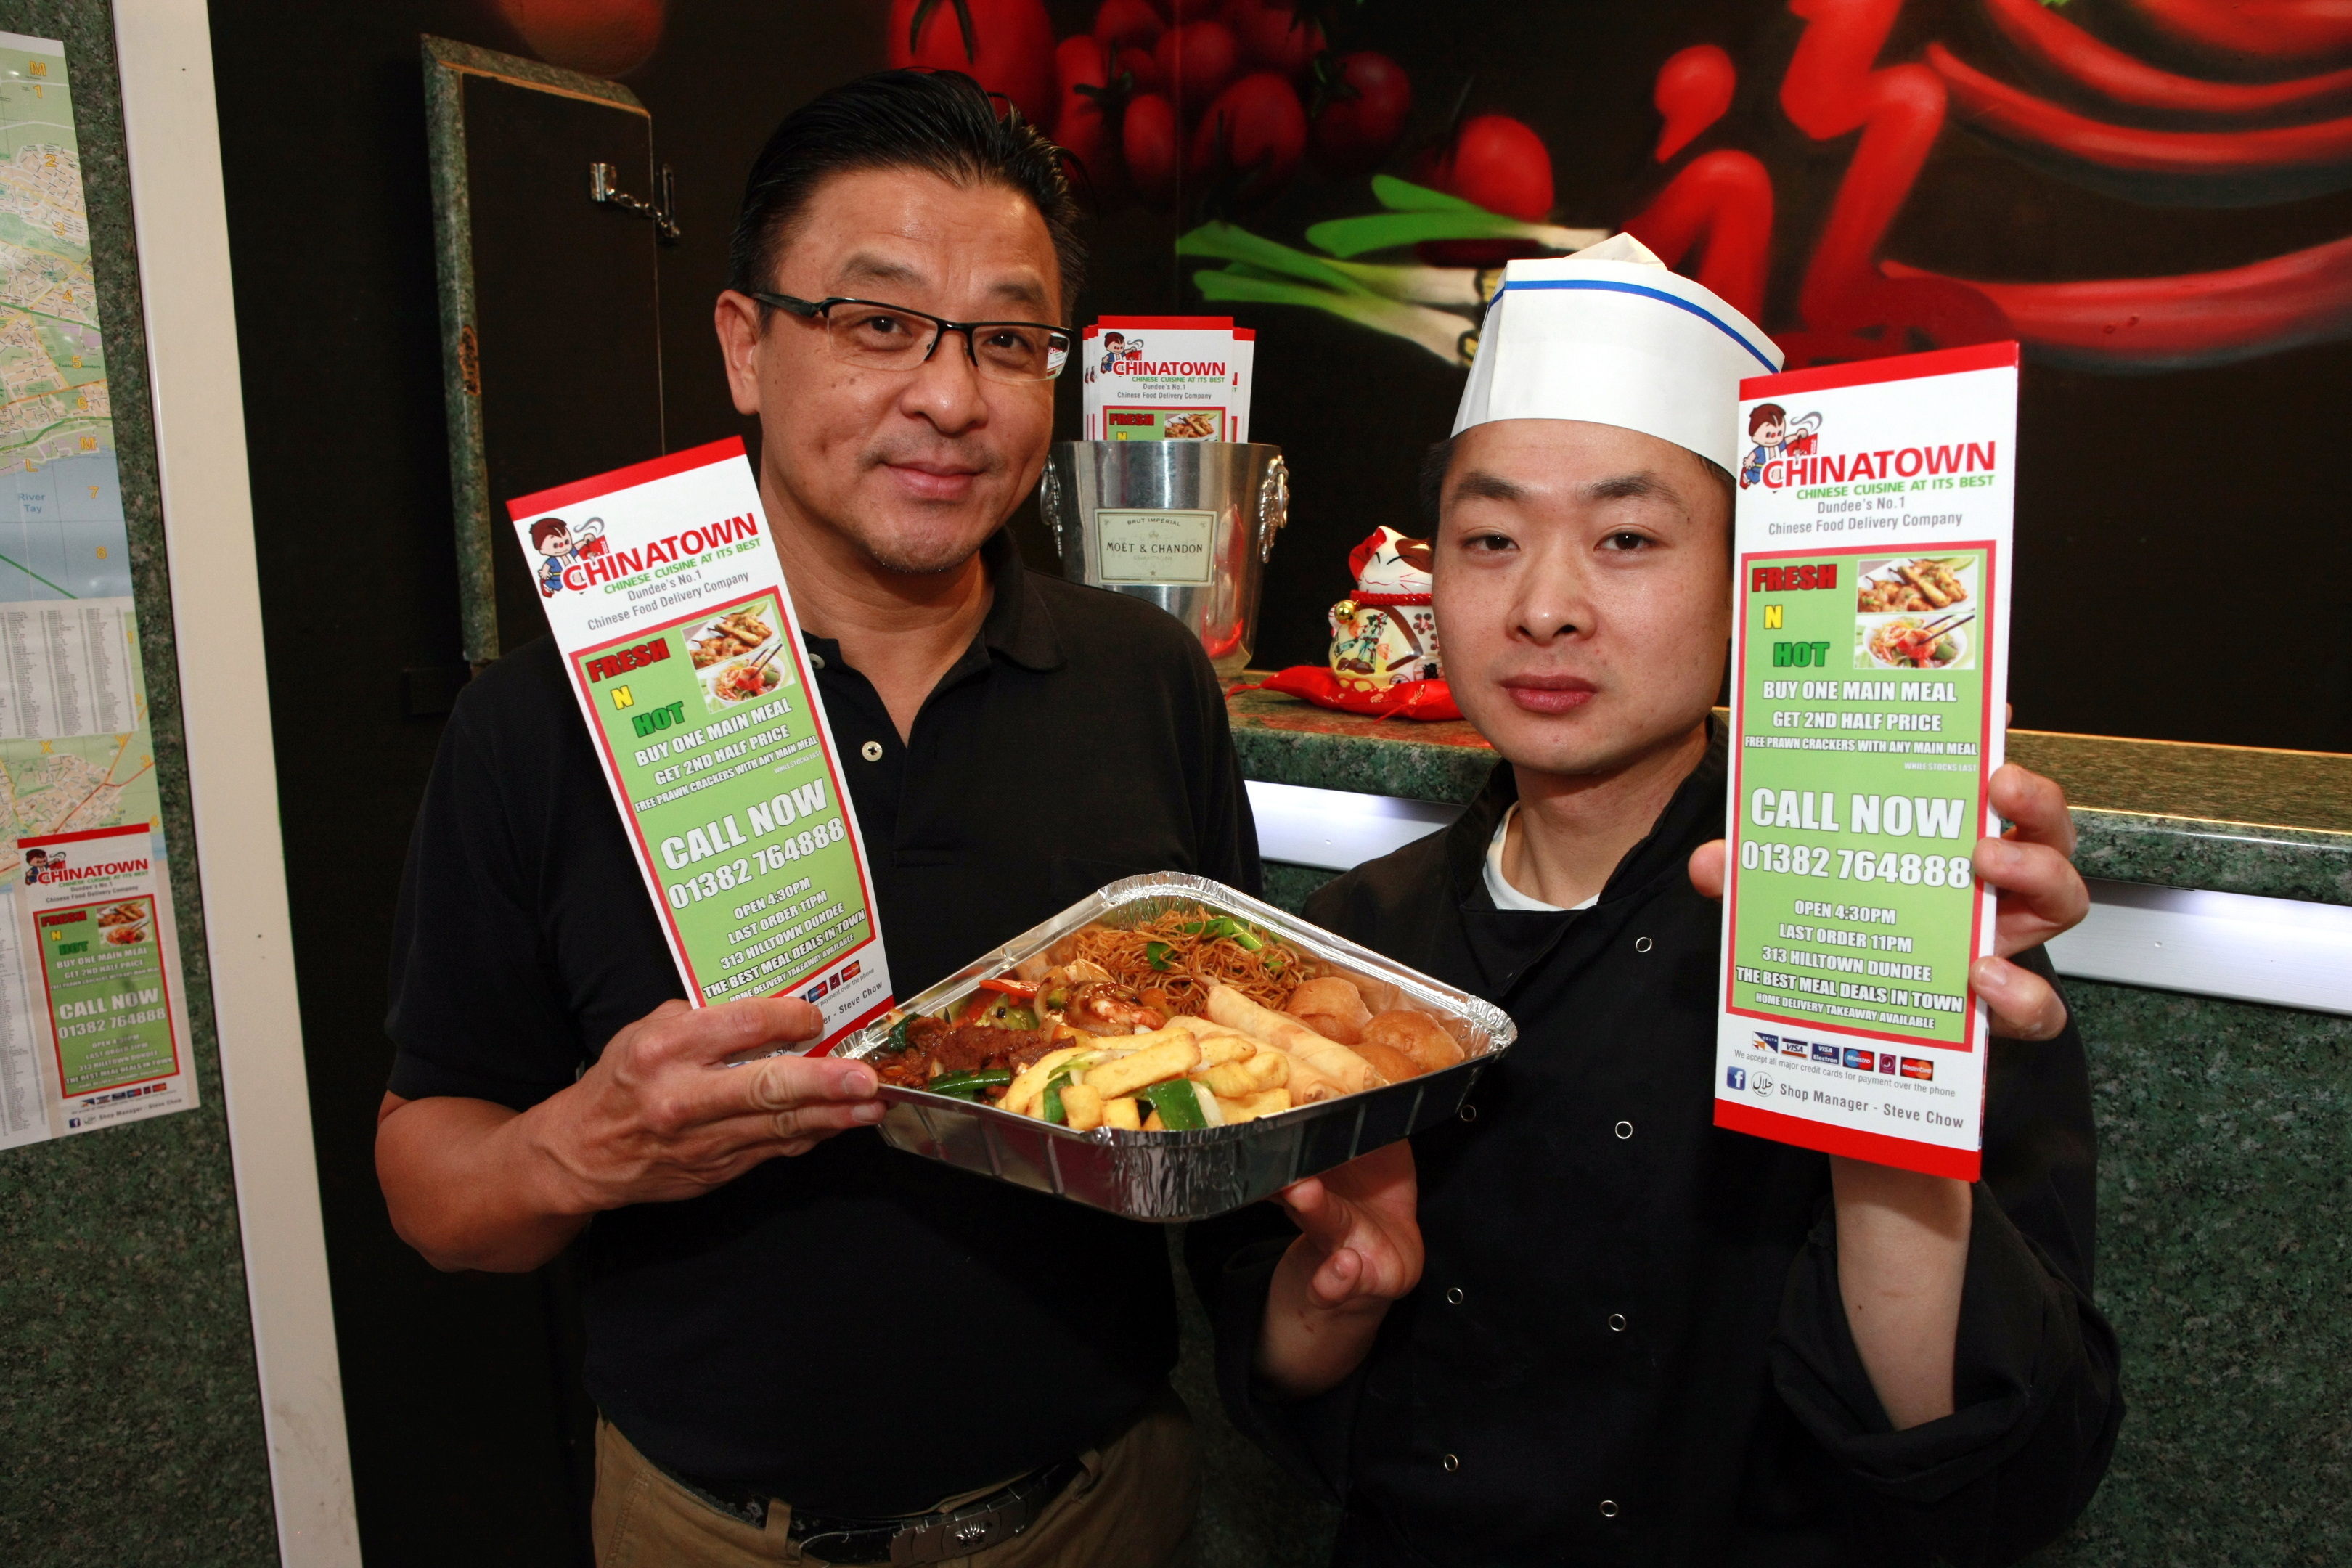 Chinatown owner Steve Chow and chef Ha Rong